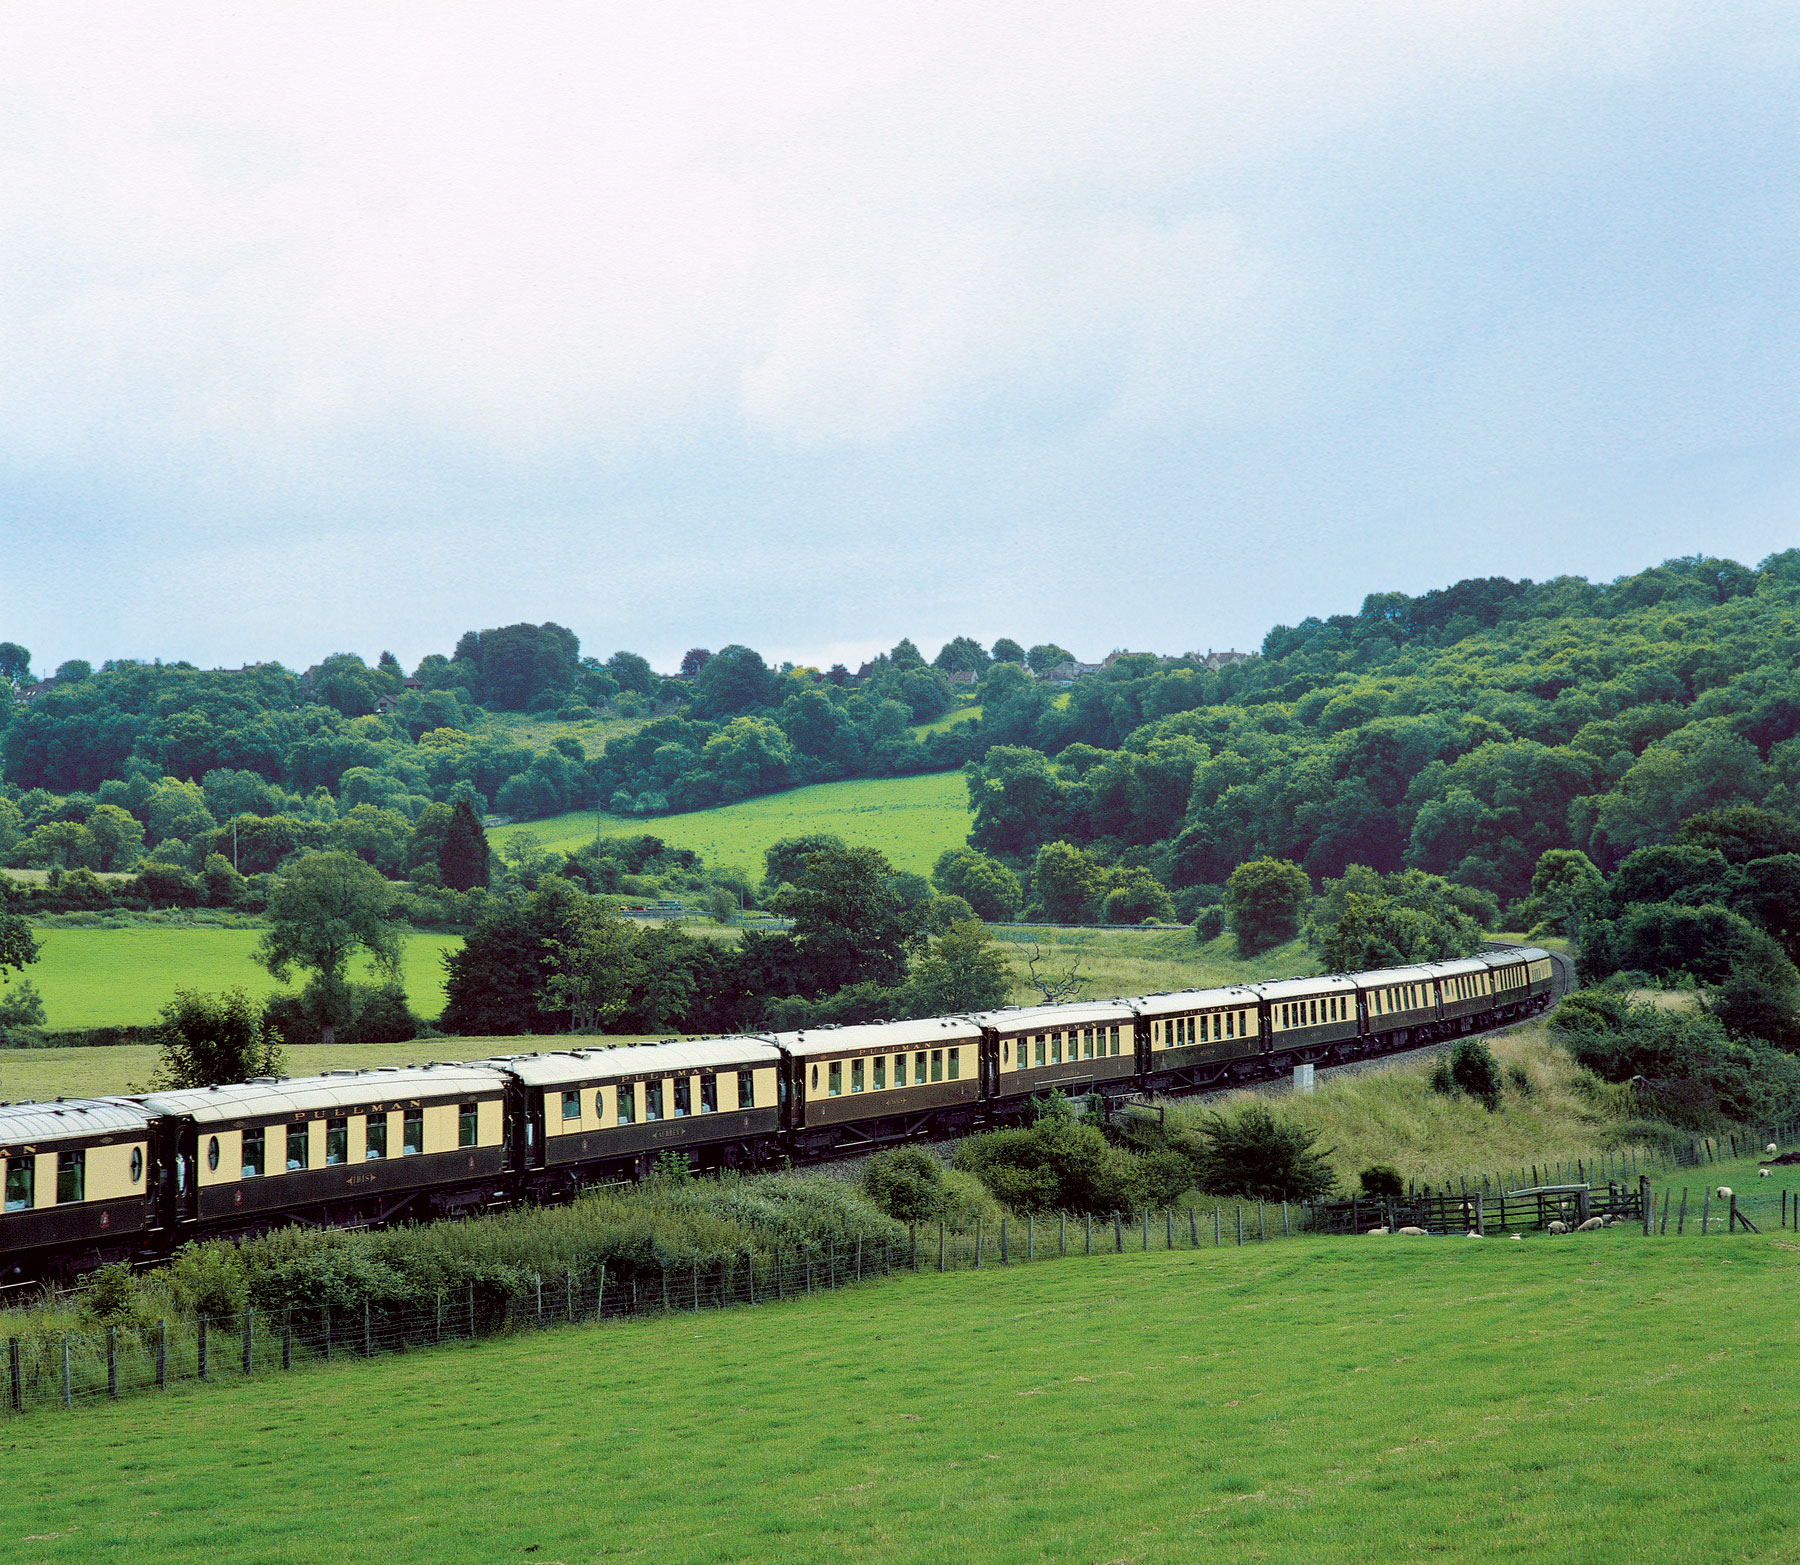 The Worlds Best Train Journeys - Mobal